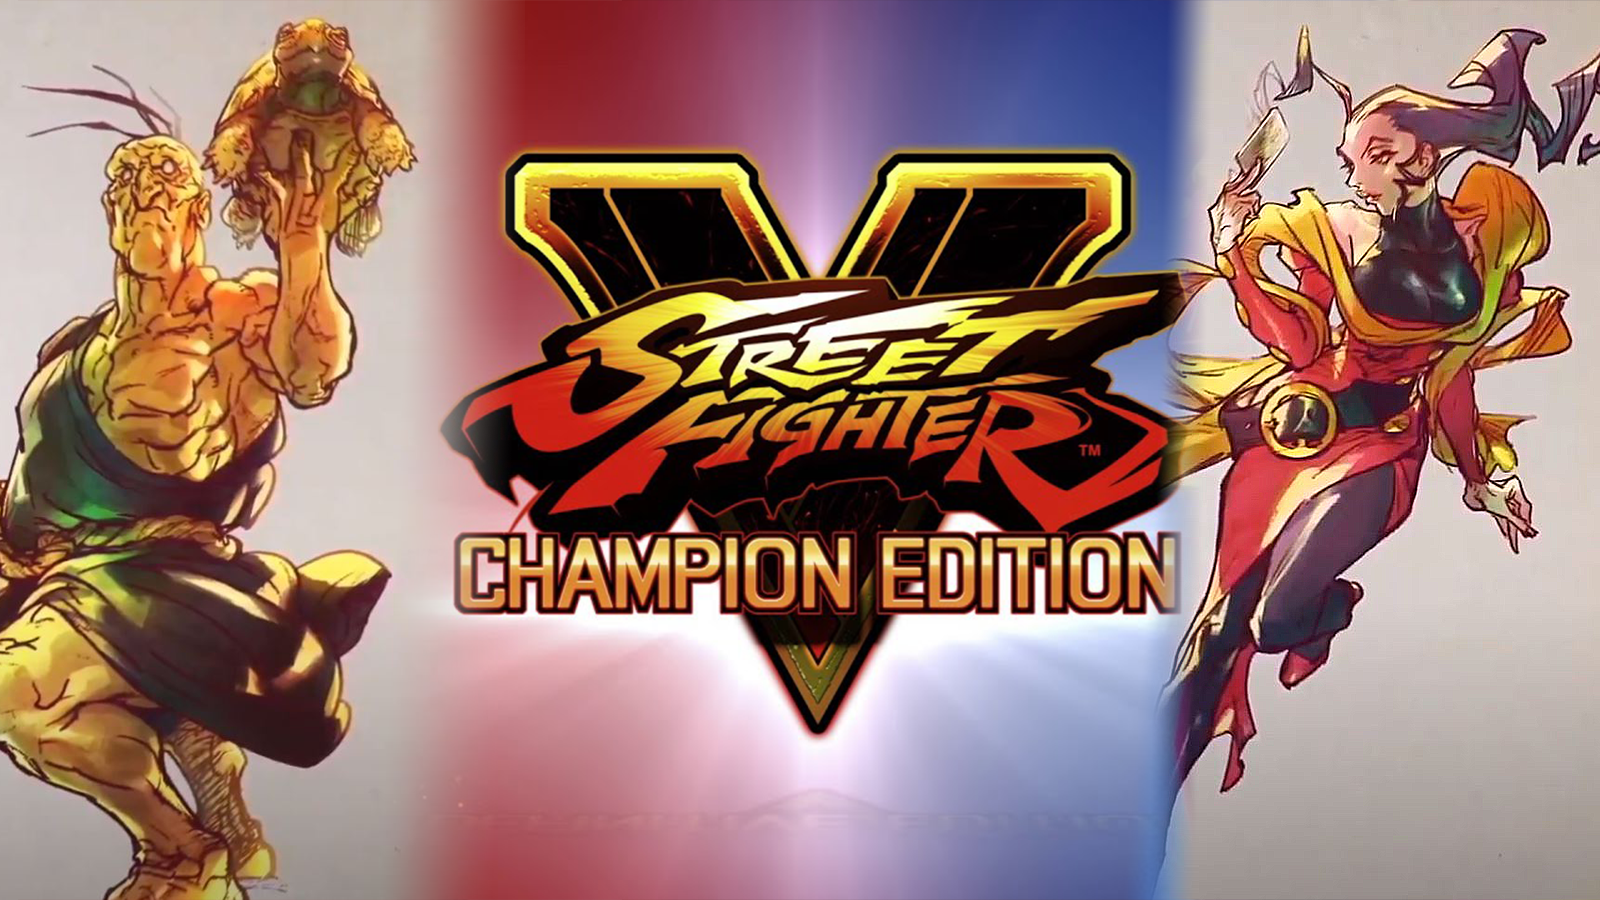 Street Fighter V: Champion Edition logo surrounded by Oro's SFV art and Rose's SFV art.